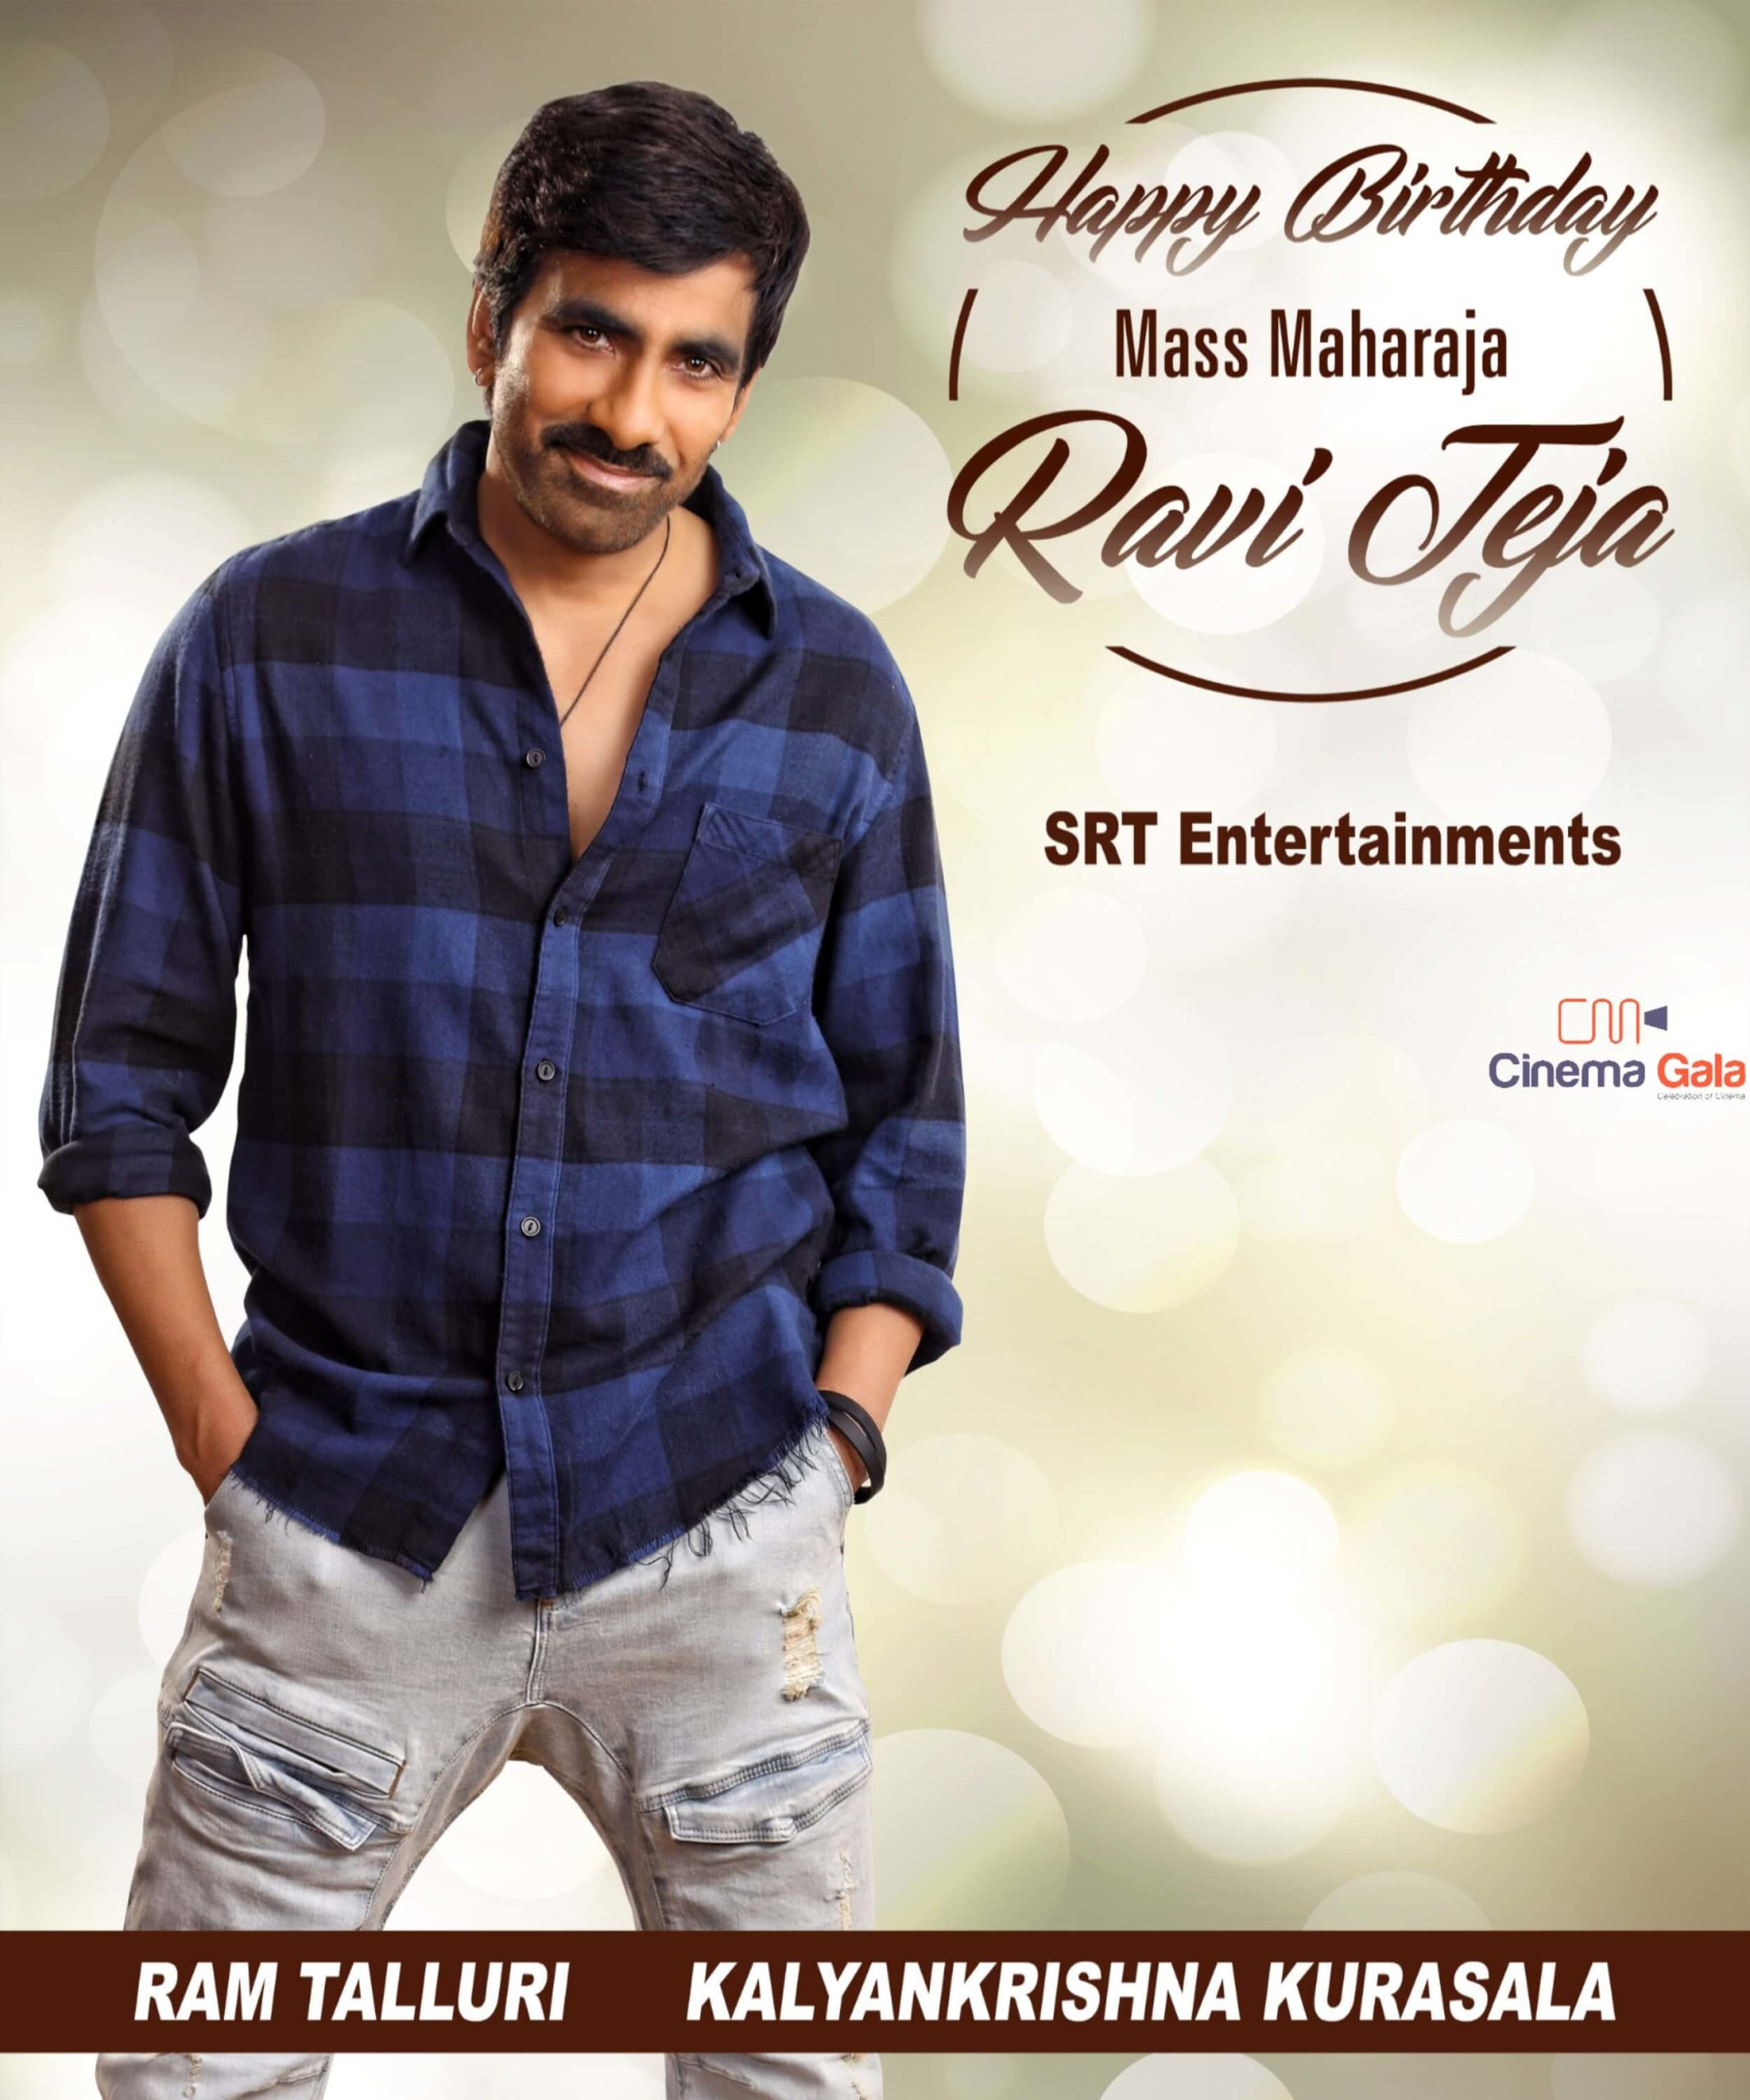 Ravi Teja Movie, Photos(images), Date Of Birth, Family, Brother, Height, Biography, Net Worth, Age, Wife, Details, Education, Instagram, Twitter, Wiki, Imdb, Facebook, Hairstyle, Youtube (14)